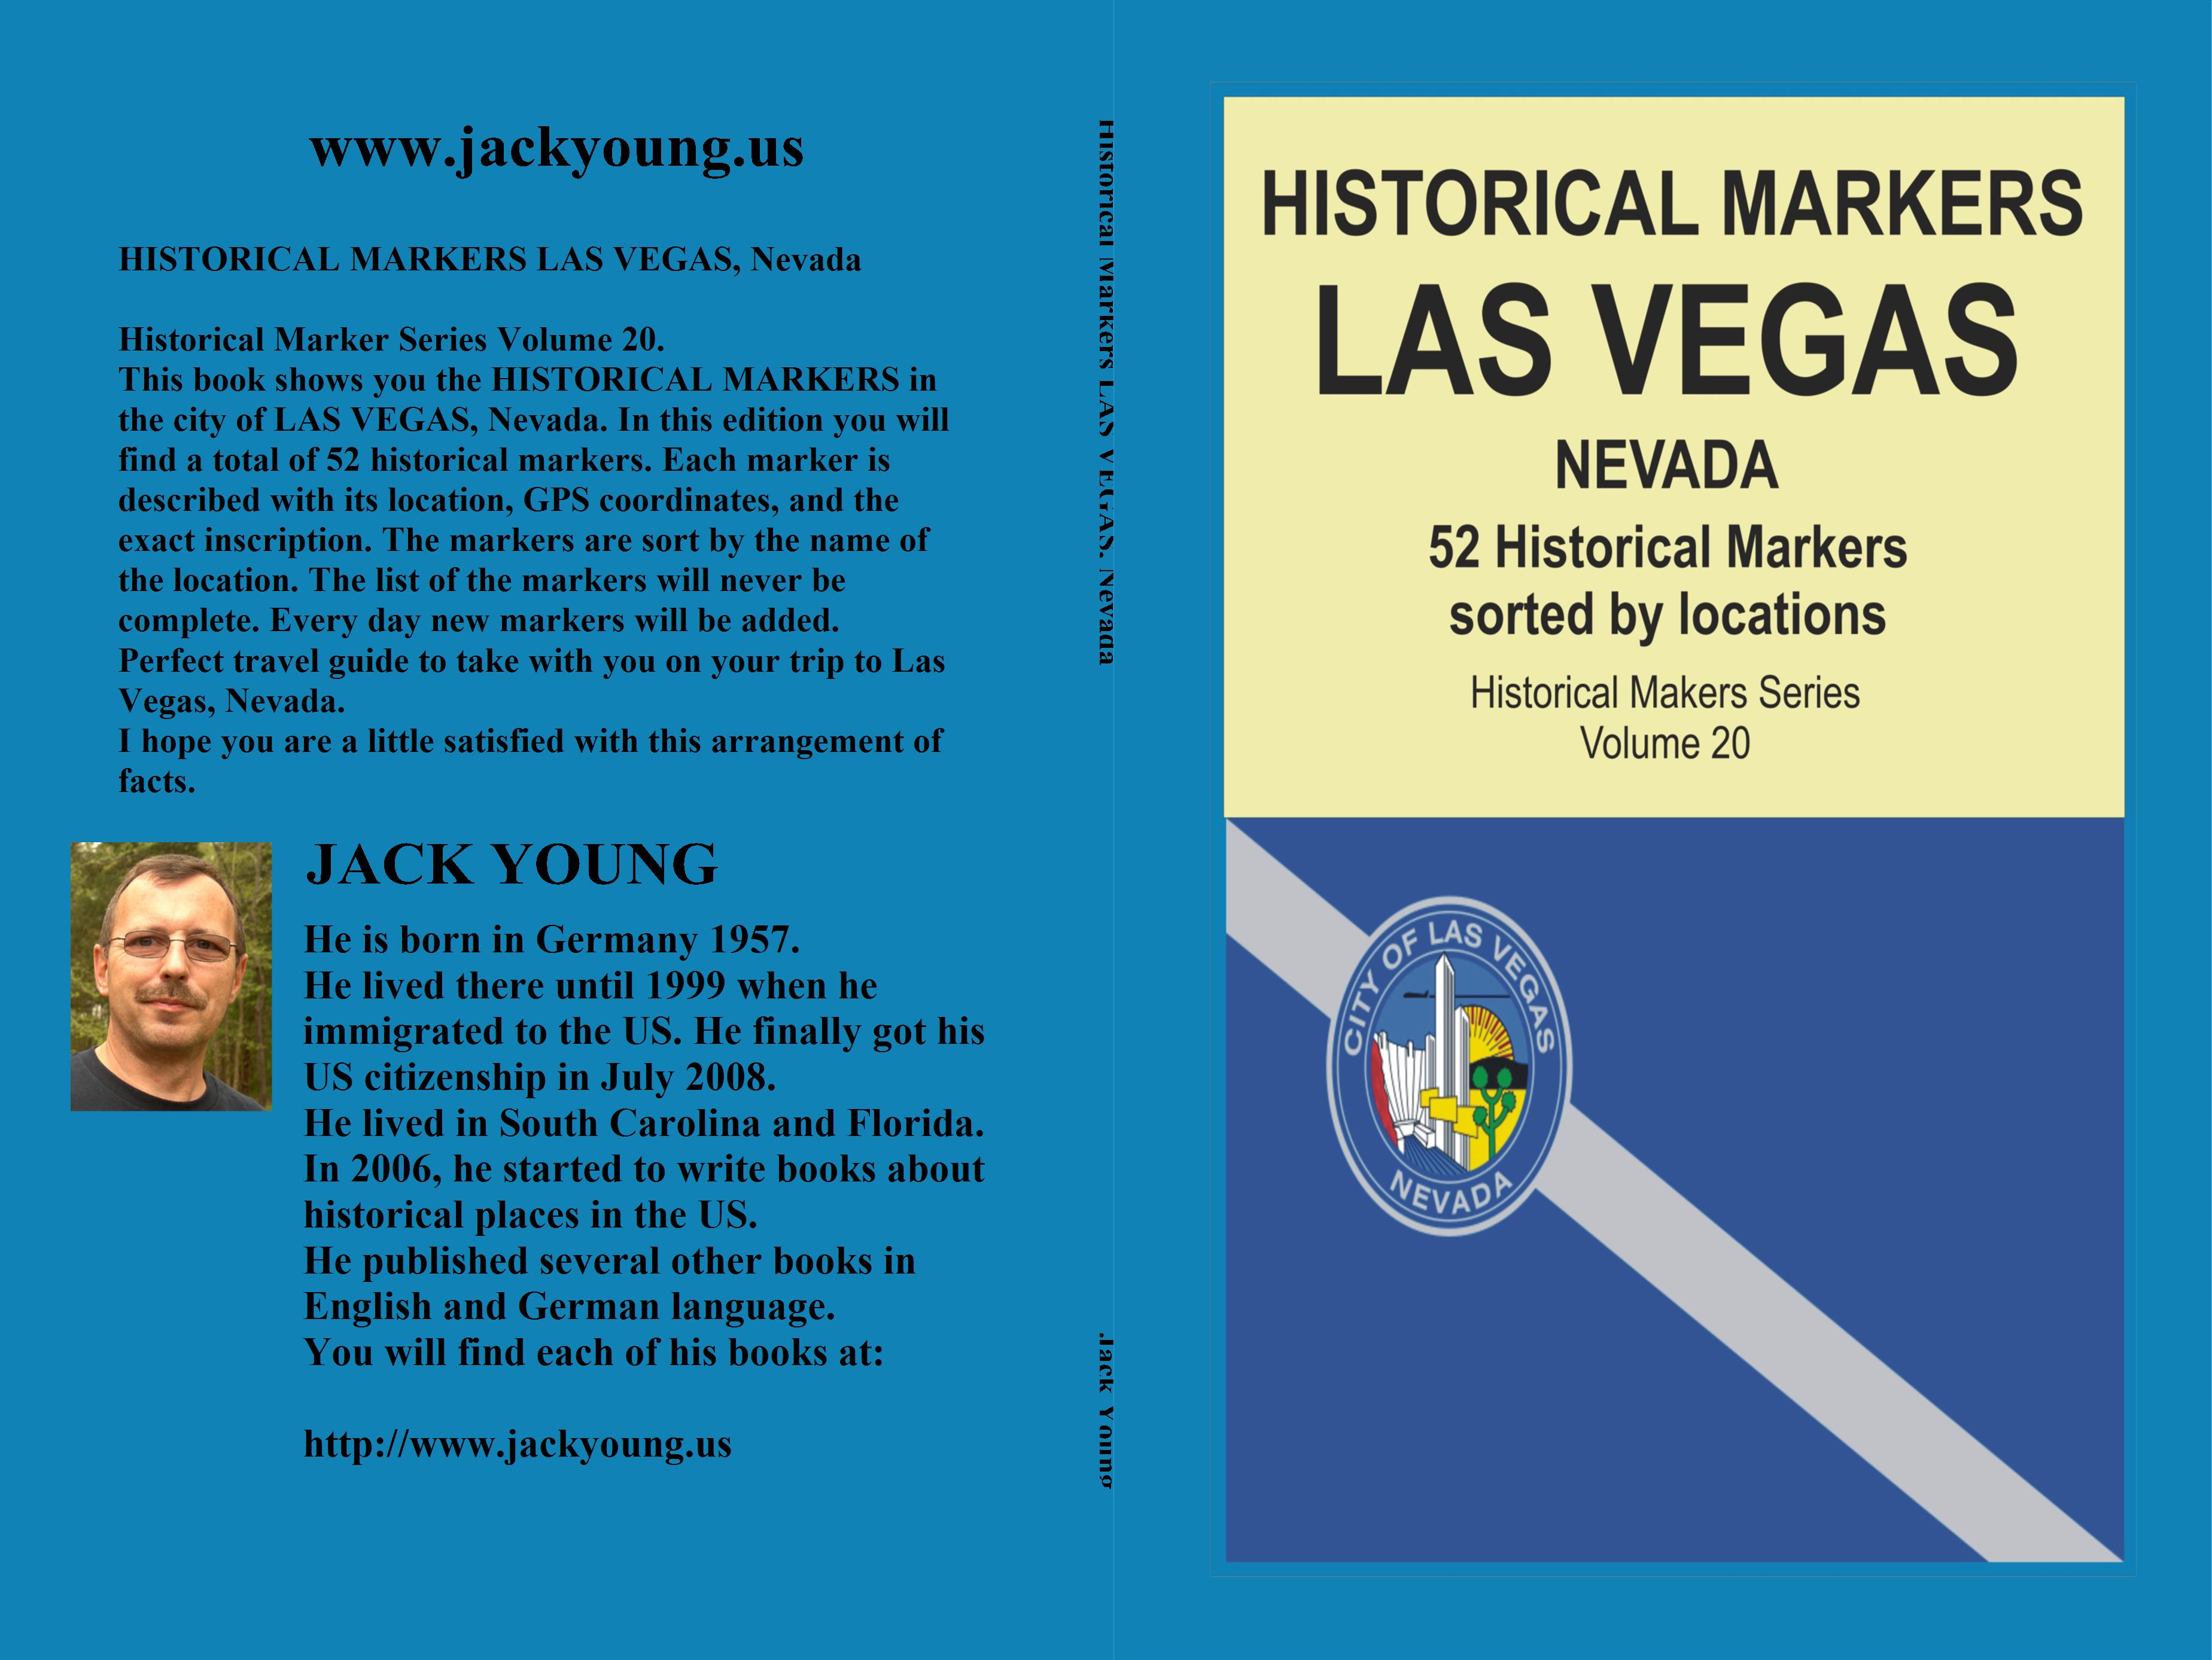 Historical Markers LAS VEGAS, Nevada cover image